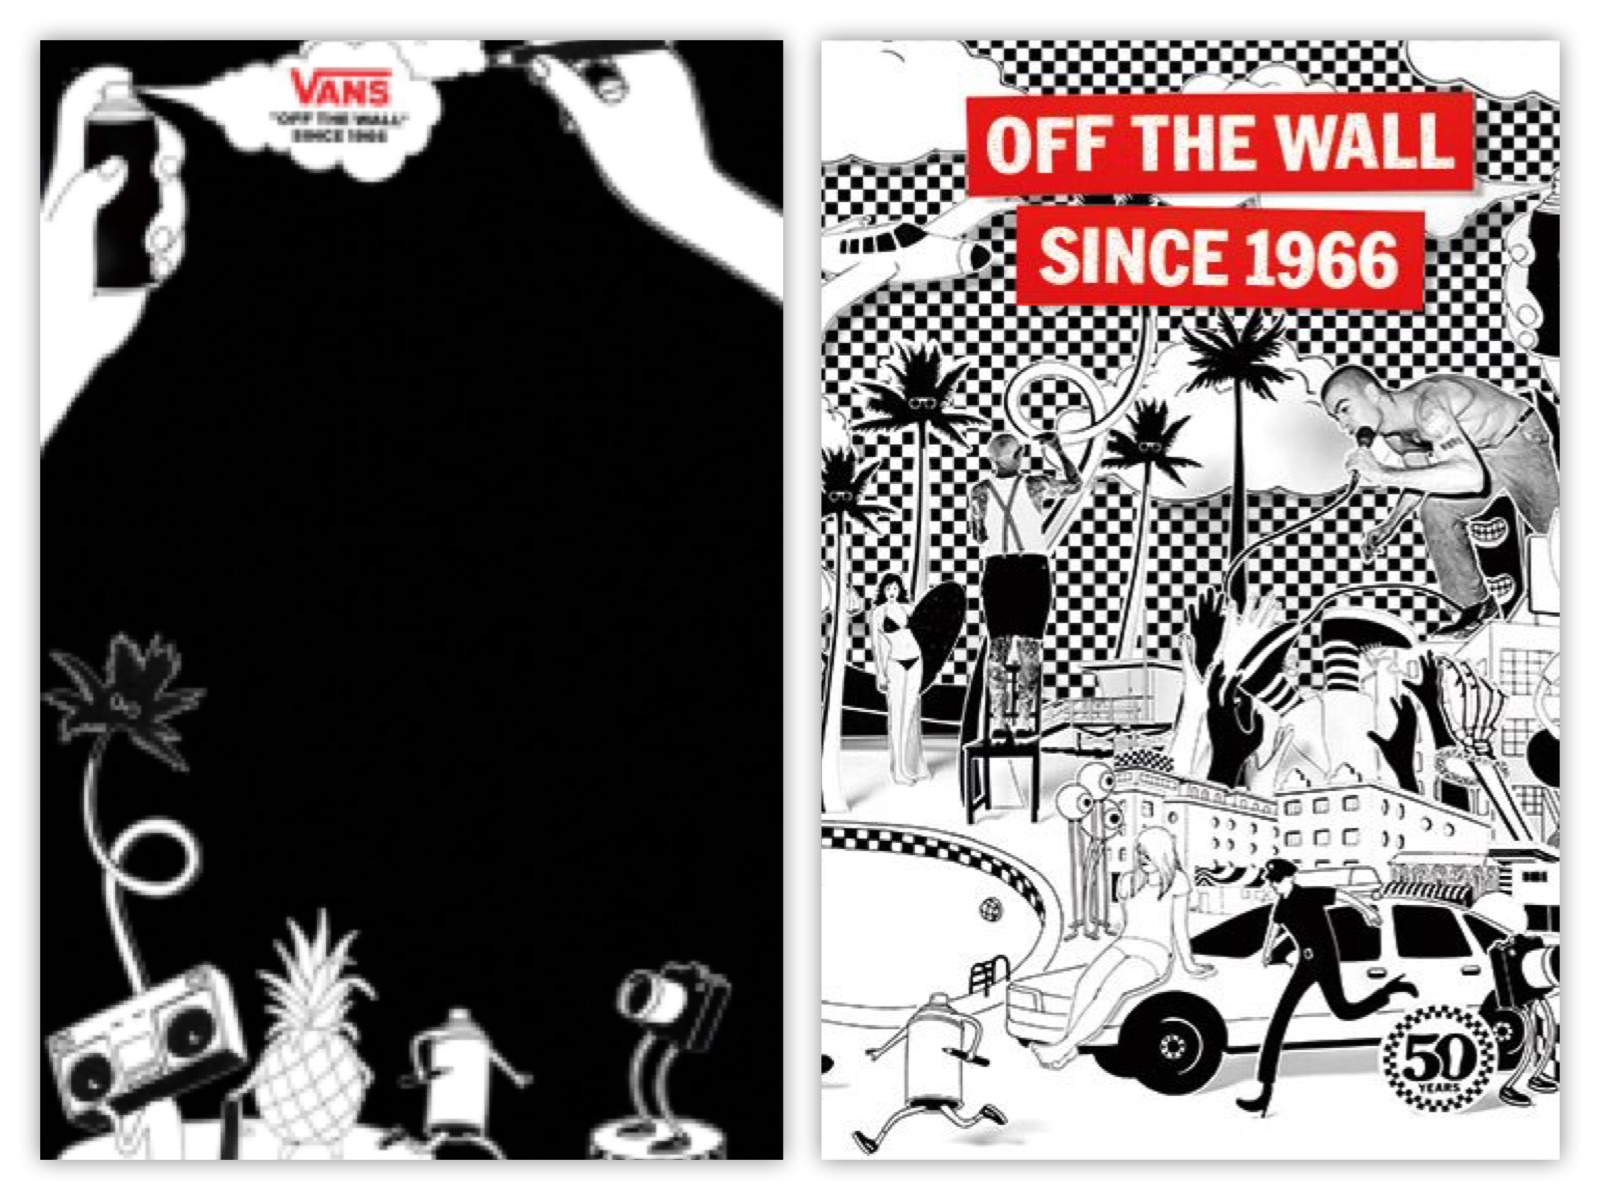 BRILLIANT marketing from Vans: Off The Wall for 50 Years!! | Zandl Slant by  Irma Zandl | Trends. Business. Media. Culture.